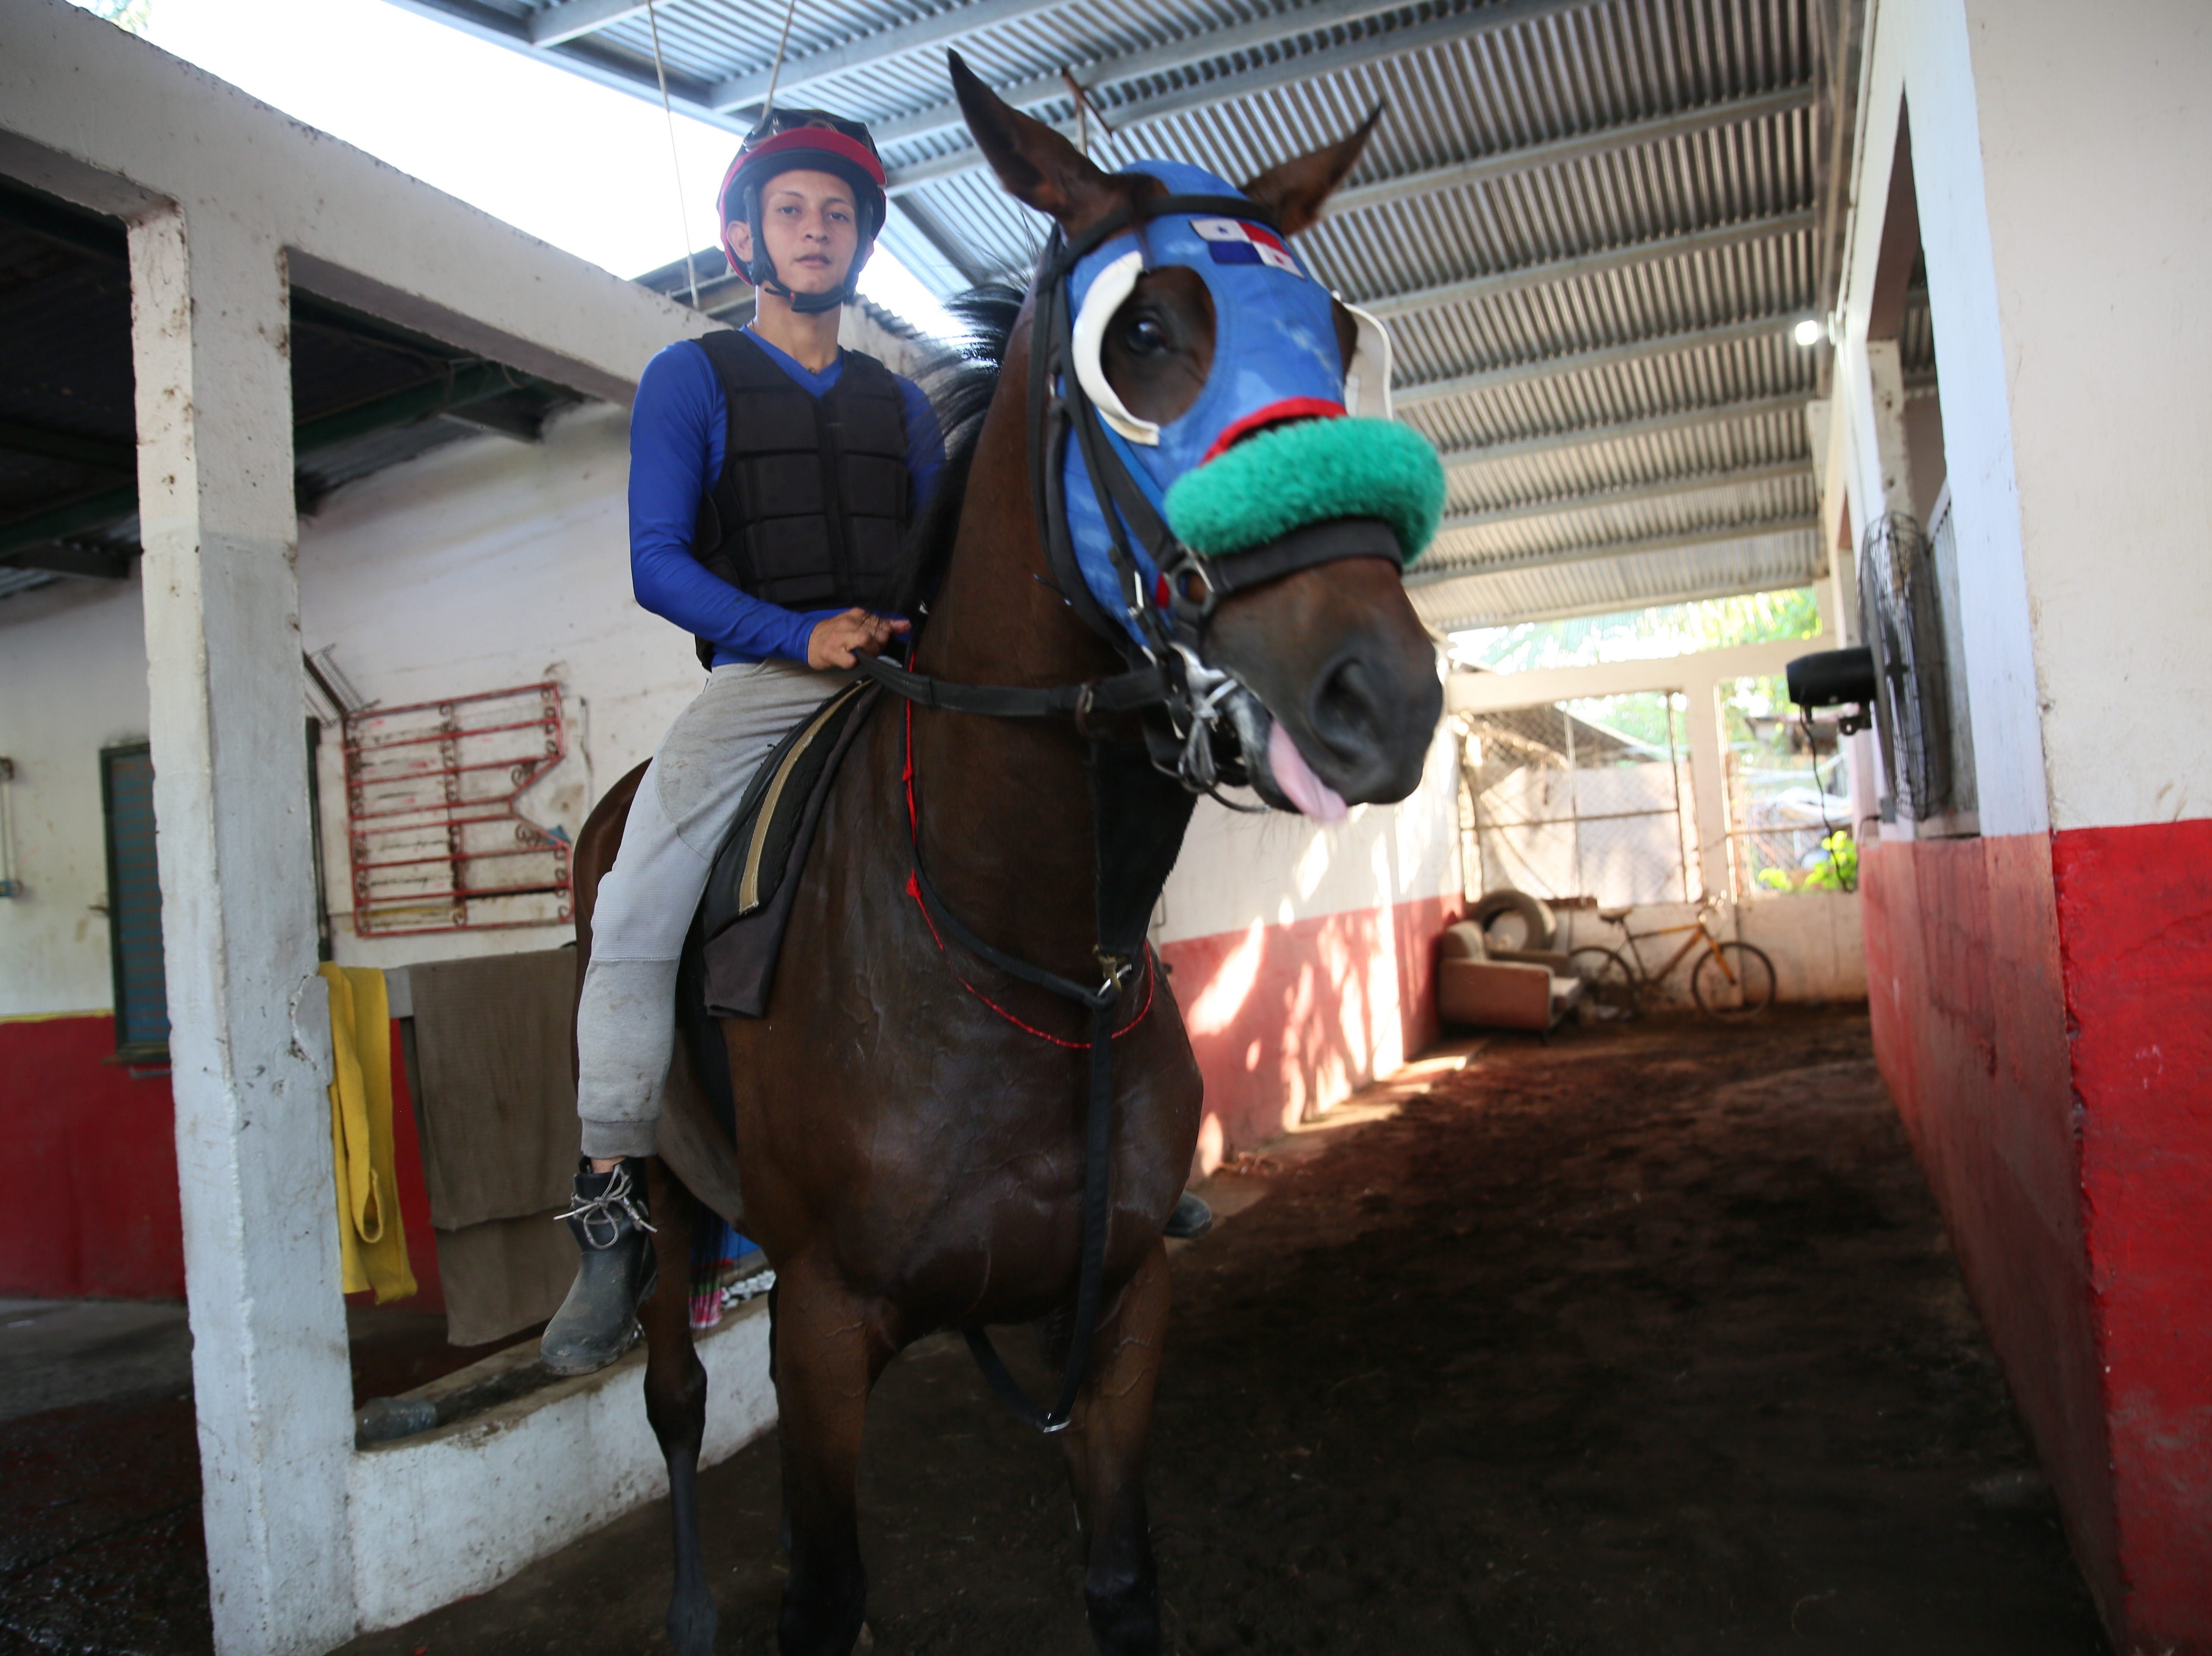 Wilmar Alarcon, 24, is among the students at the famed Laffit Pincay Jr. Technical Jockey Training Academy in Panama, known as the 'cradle of the best jockeys in the world.'